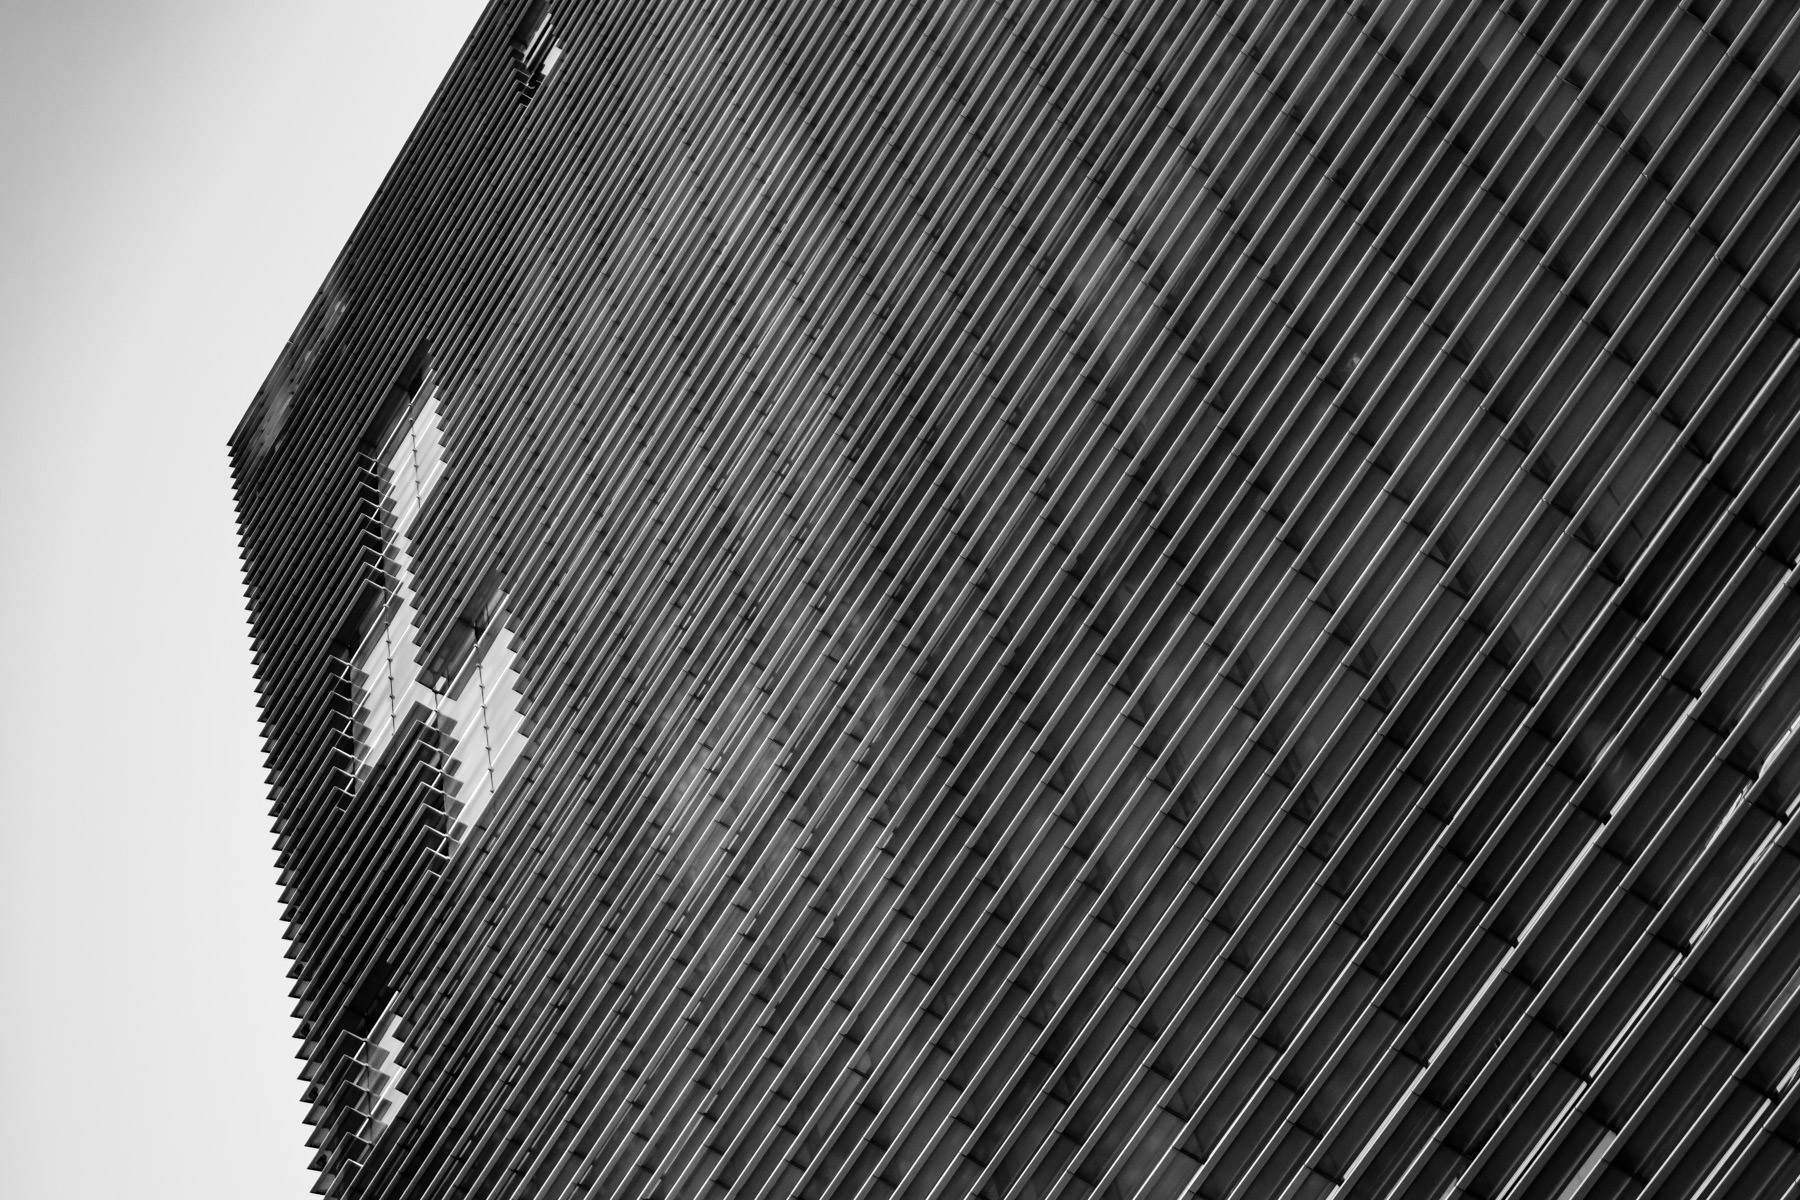 Exterior detail of the one of the Veer Towers, CityCenter, Las Vegas.